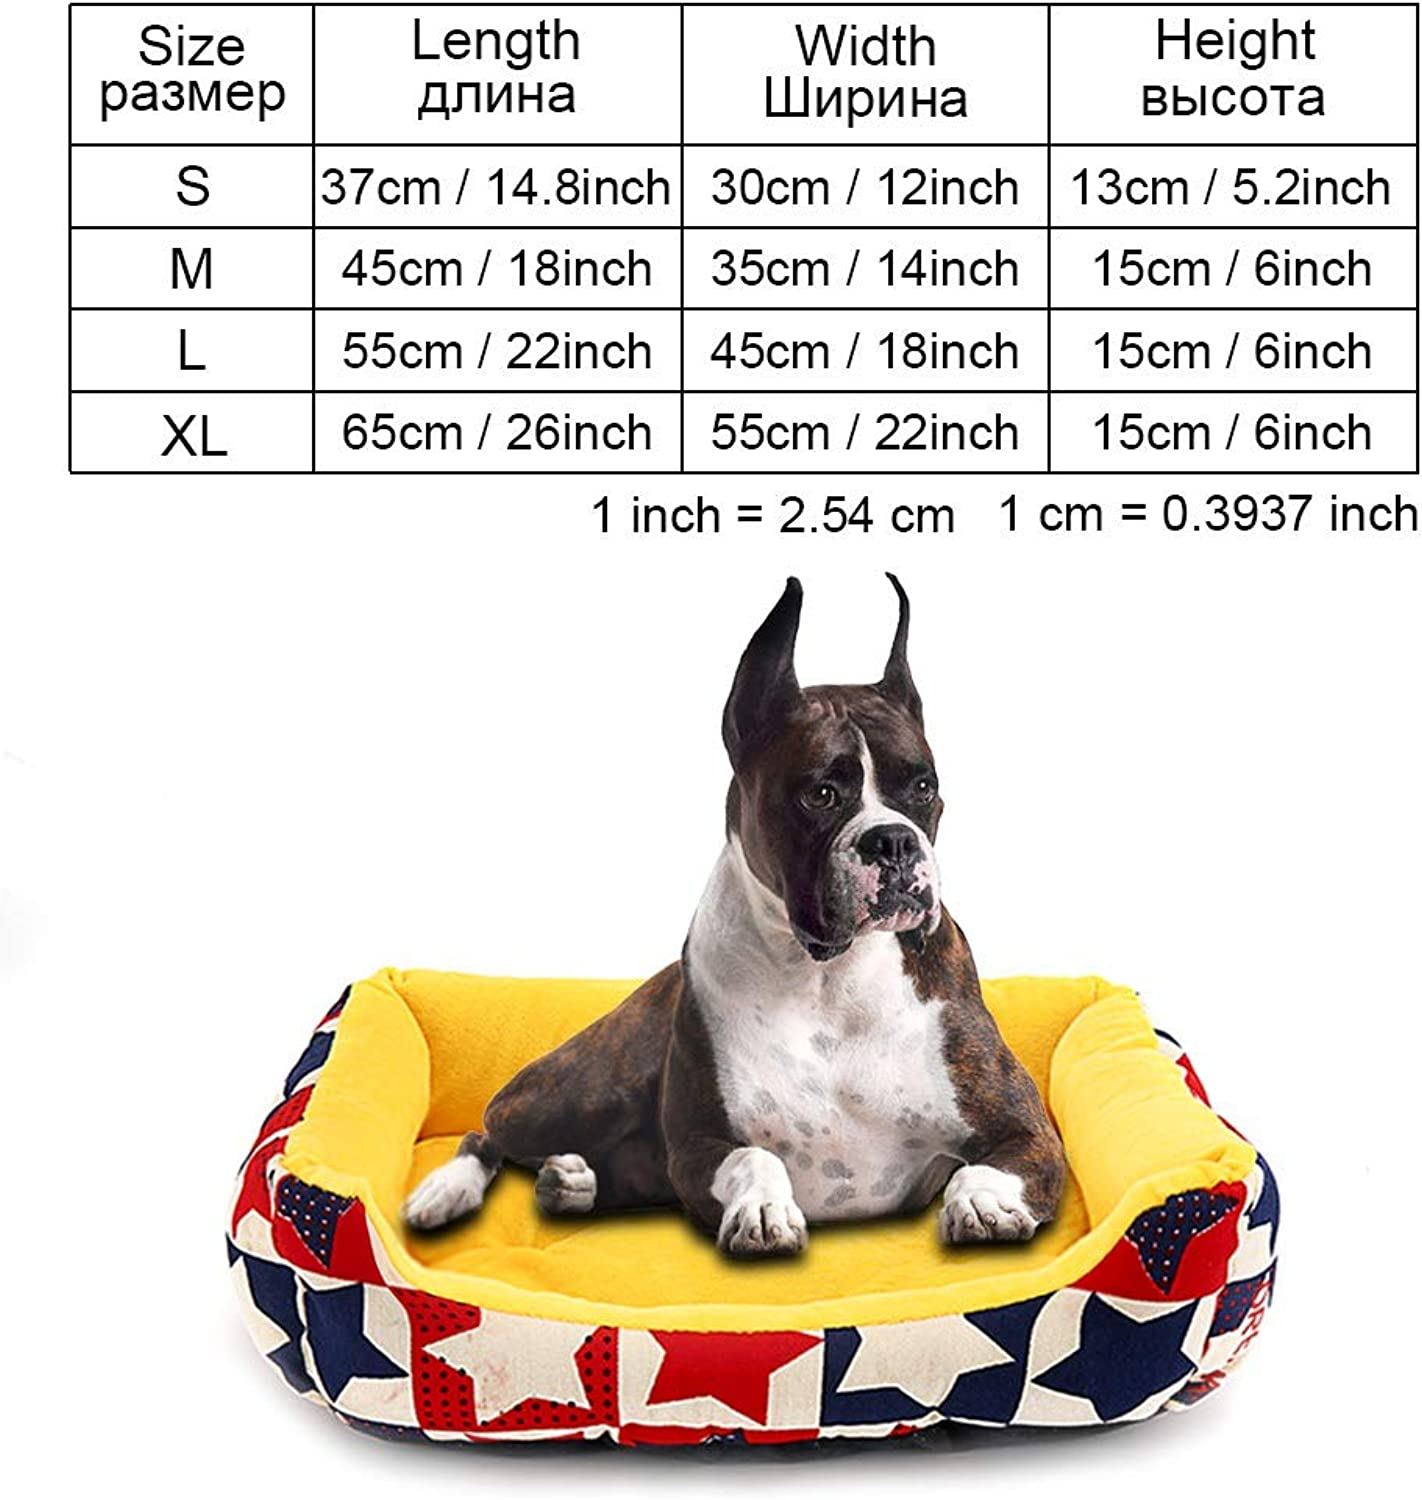 Cookisn Dog Bed Bench for Dogs Pet Products Puppy Bed House for Cat Dog Beds Mat Sofa Lounger for Small Medium Large Dogs Cat Pet Kennel yellowCOO040 XL 65x55cm